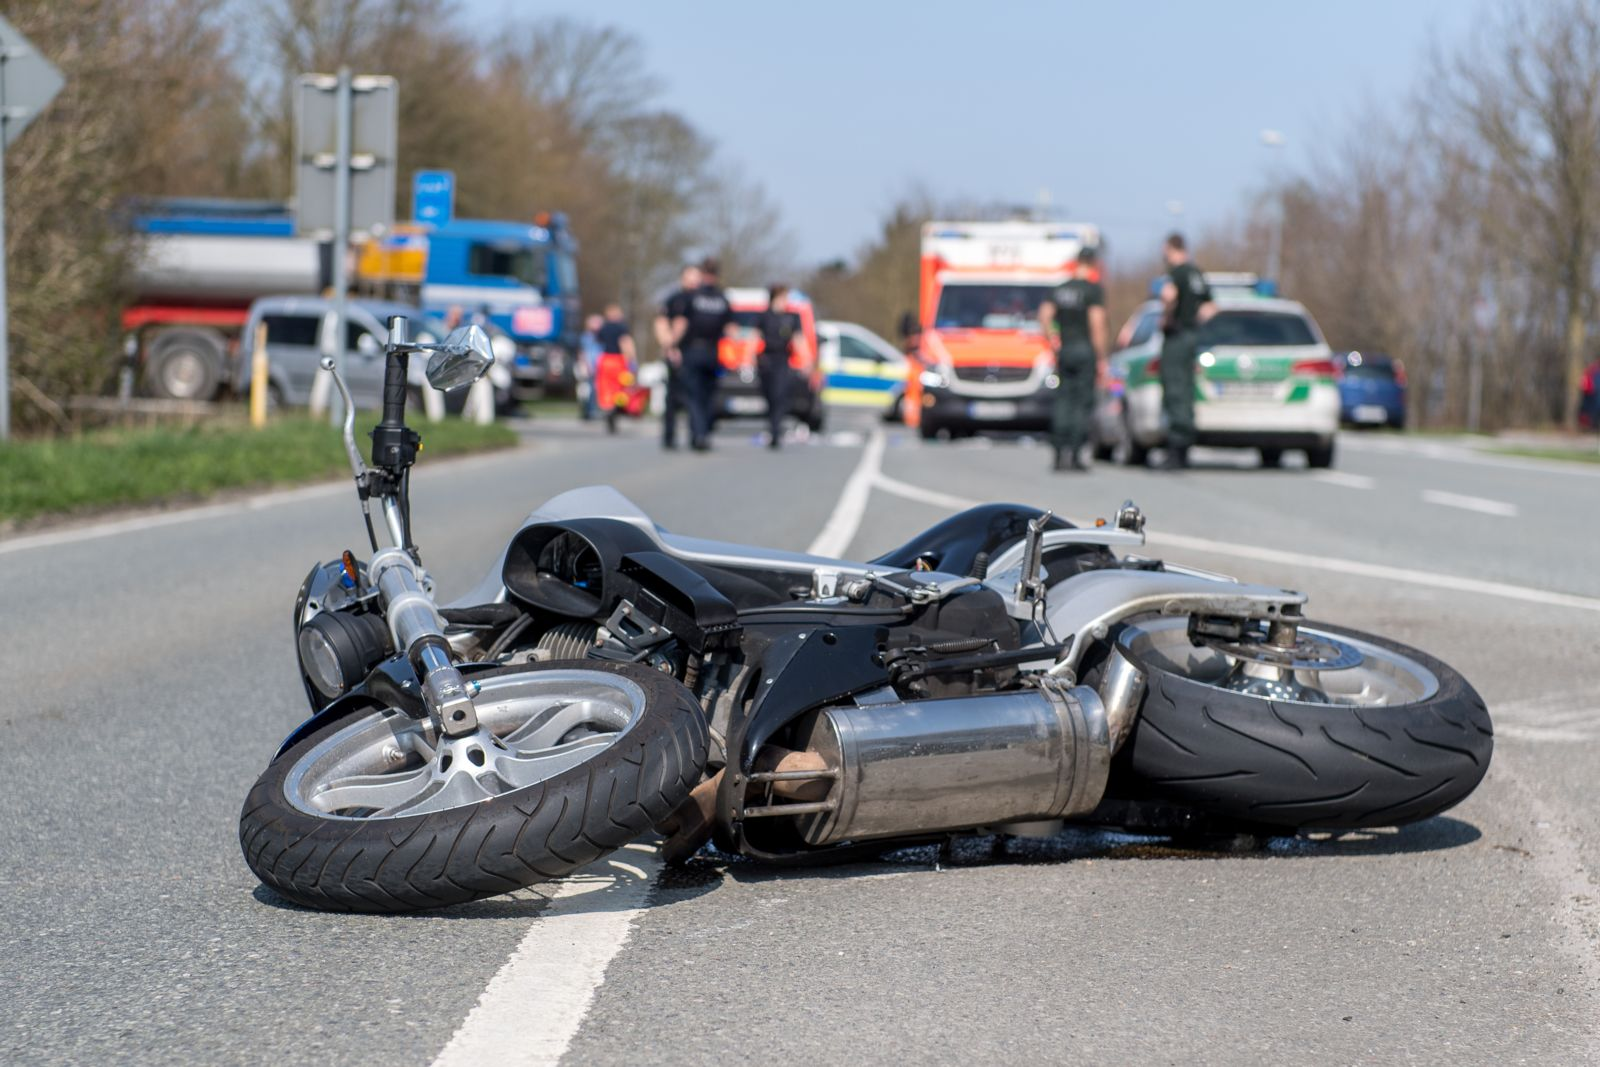 The Pennsylvania motorcycle accident lawyer